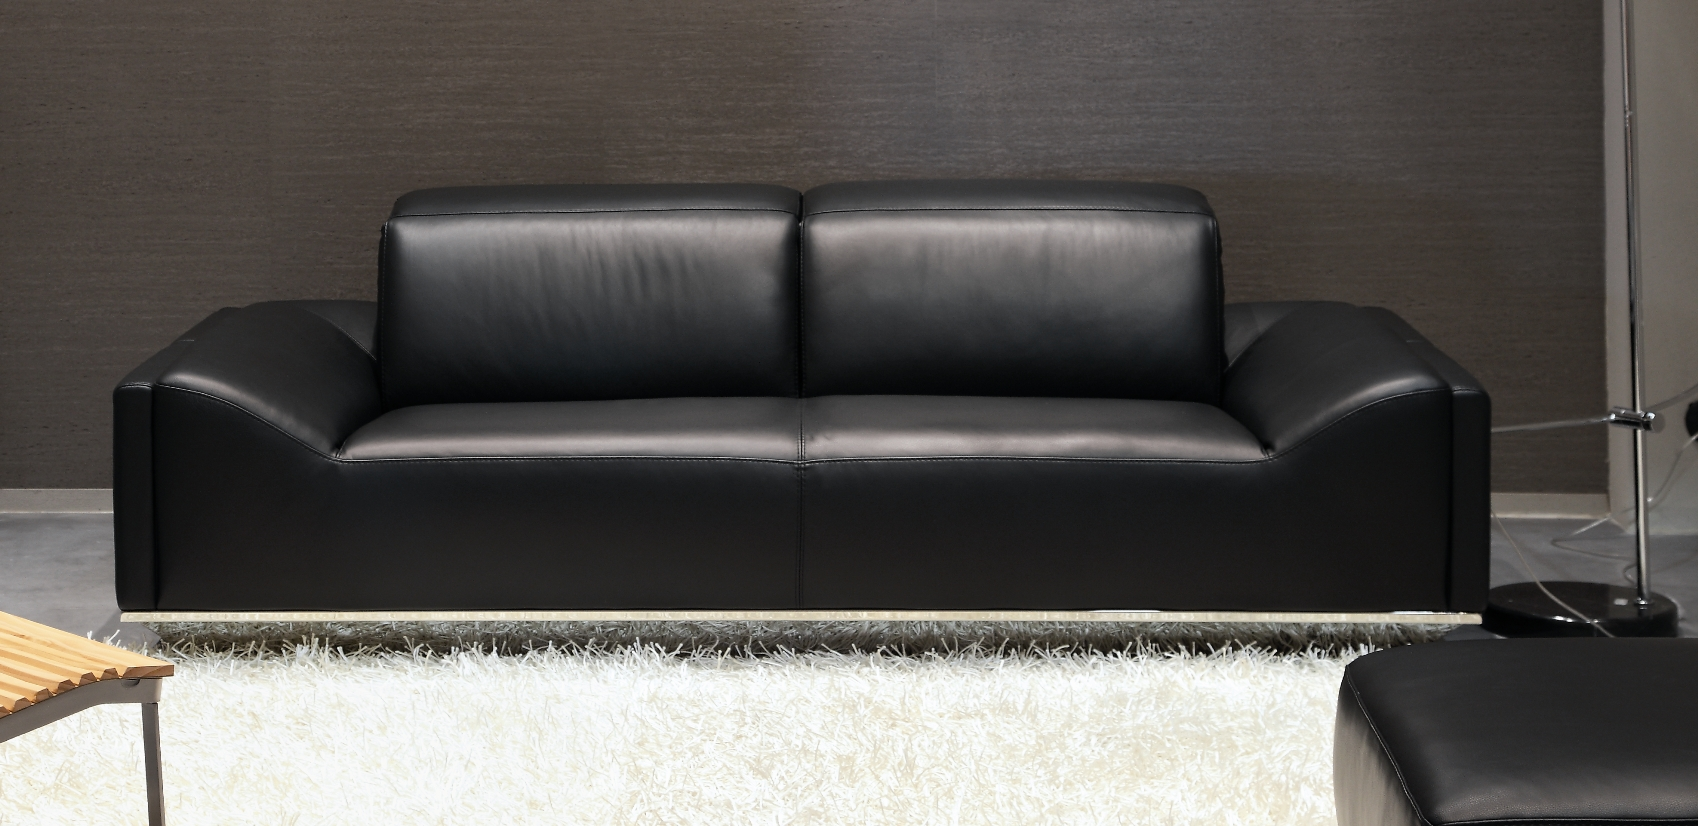 Sofa Style modern style sofa. luxury fine home furnishings, high quality